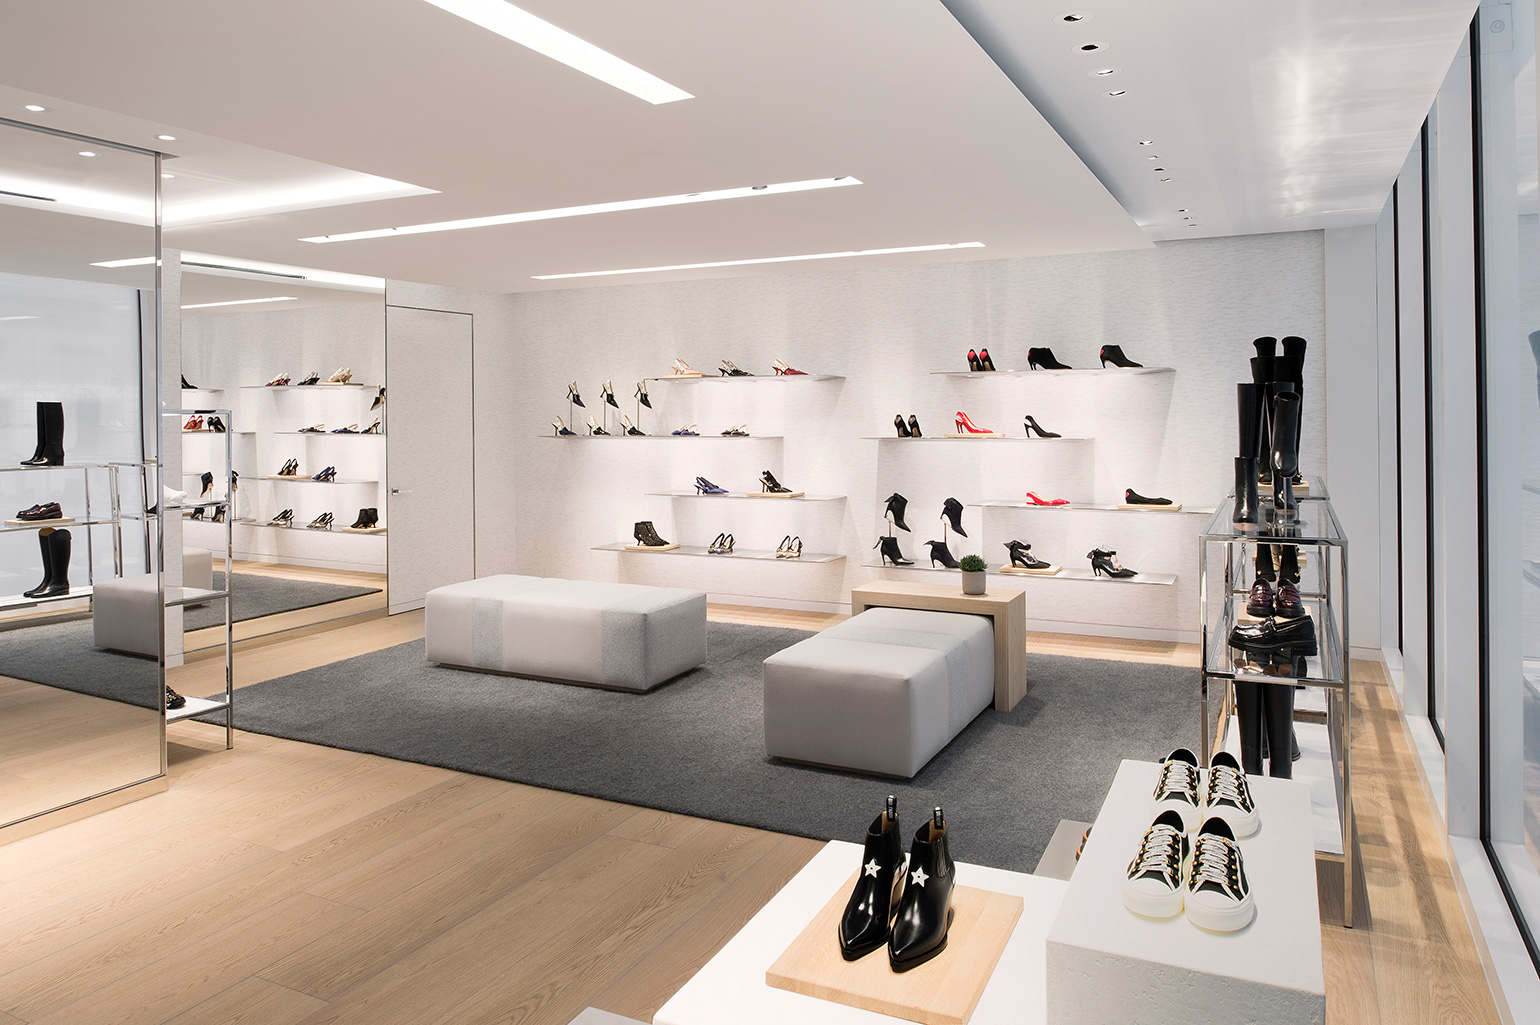 Dior-Content-04-interior-second-floor-shoess.jpg